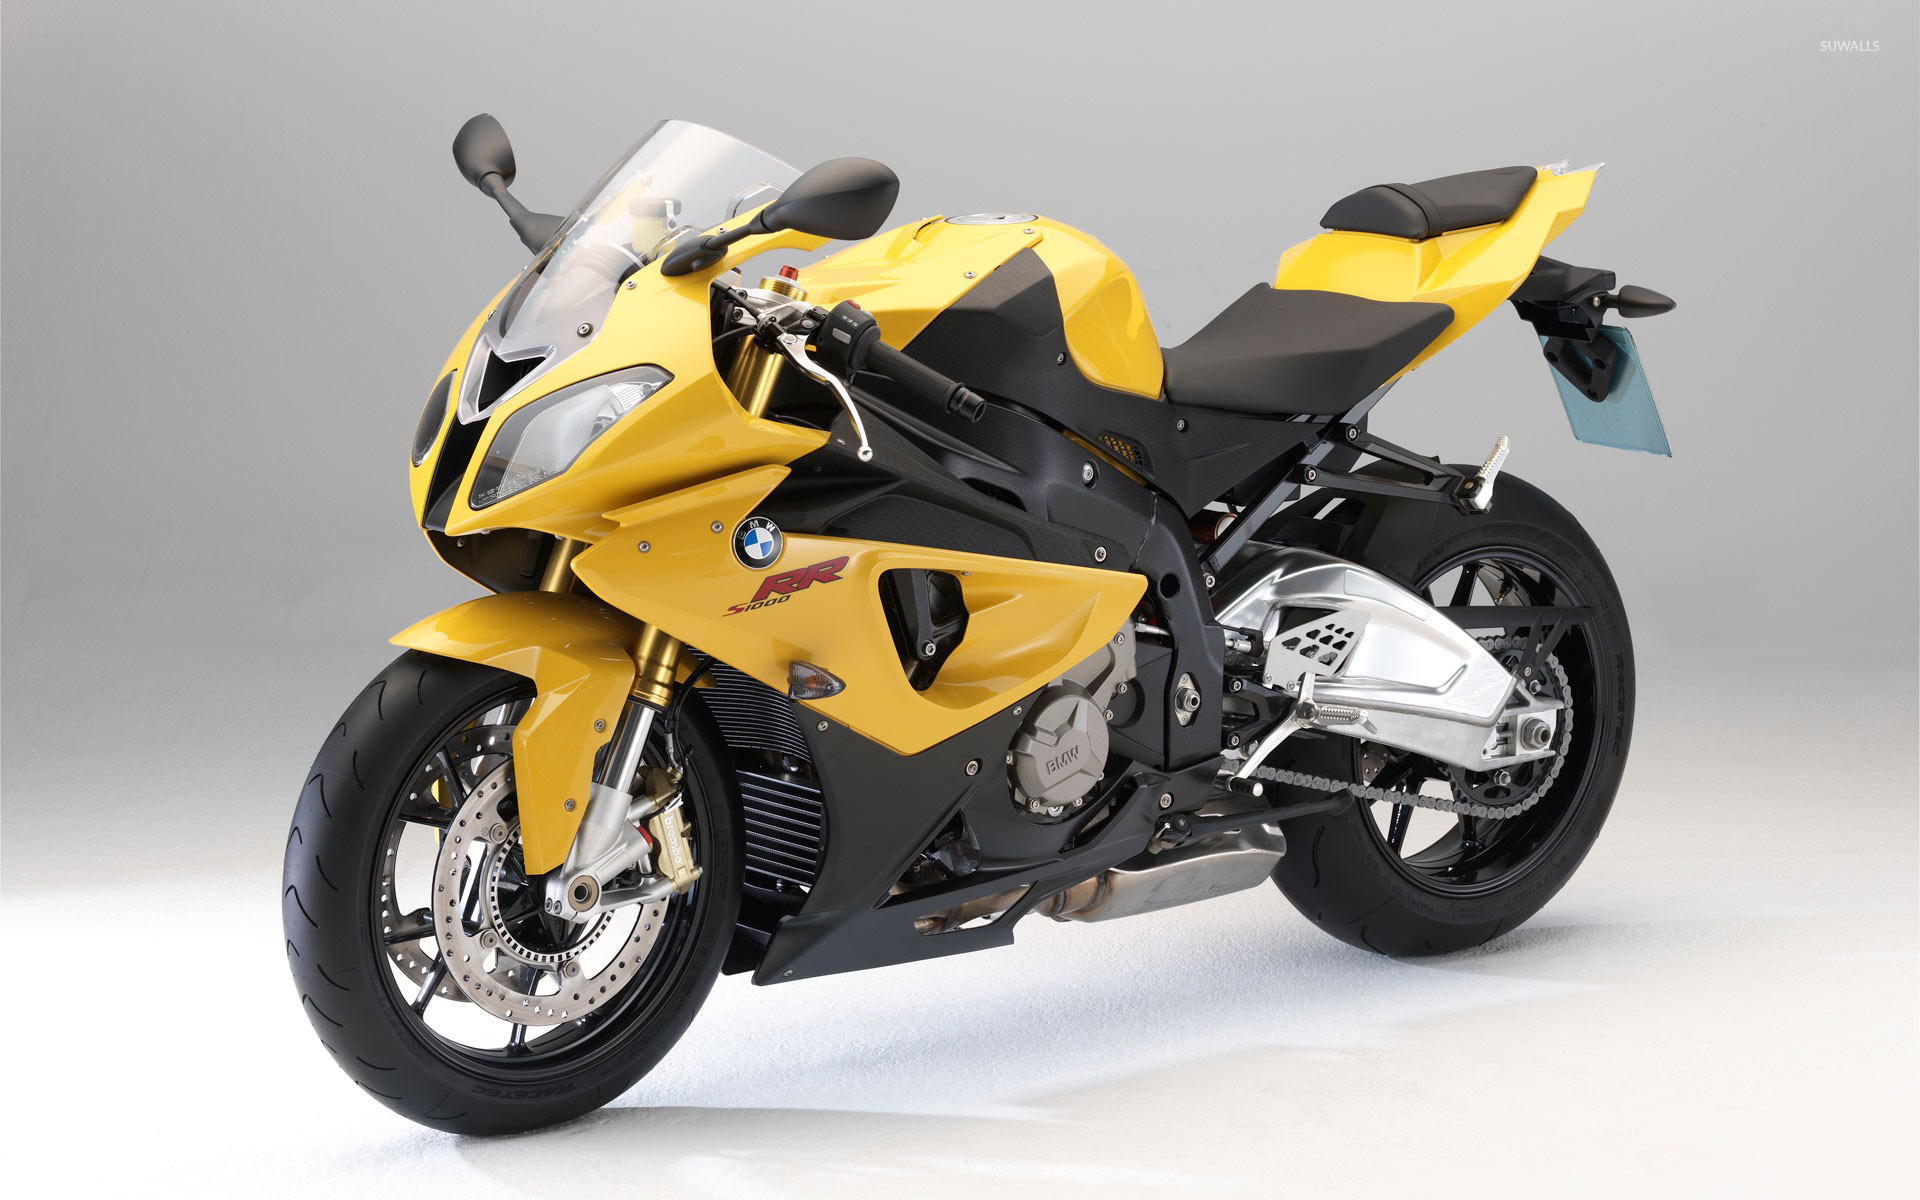 Bmw S1000rr 13 Wallpaper Motorcycle Wallpapers 11001